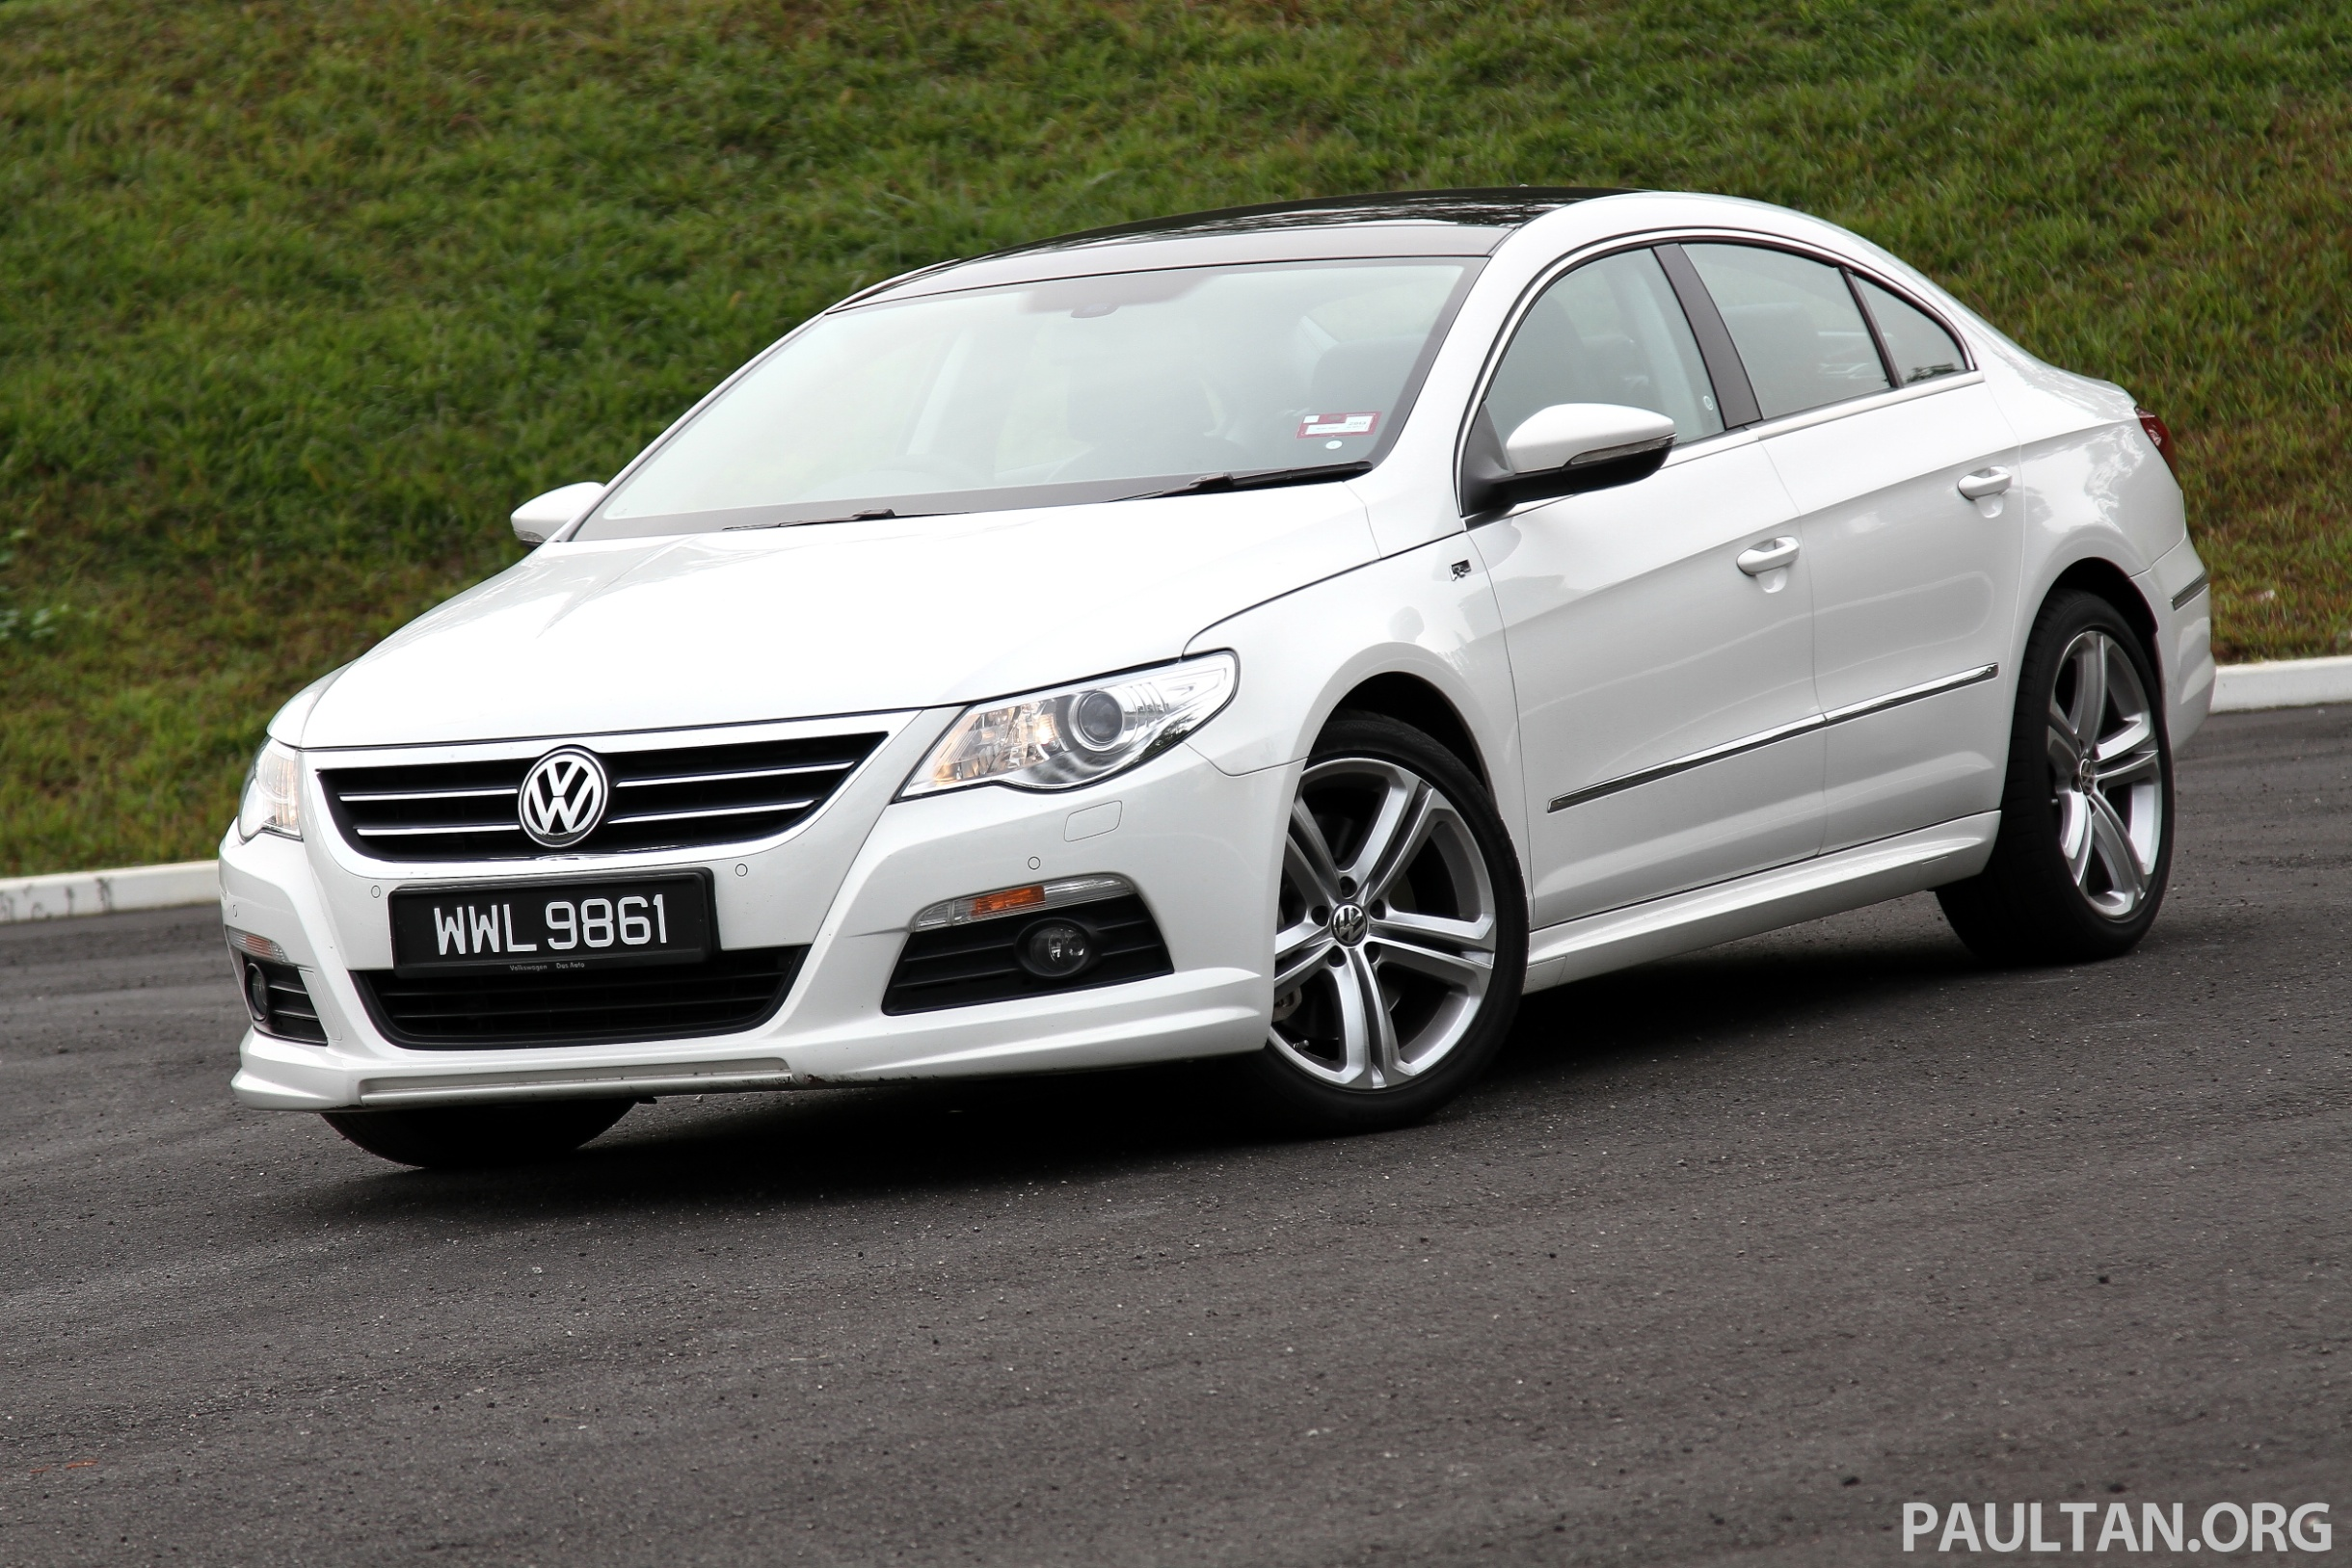 volkswagen passat cc r line 3 6l test drive review paul tan image 128184. Black Bedroom Furniture Sets. Home Design Ideas